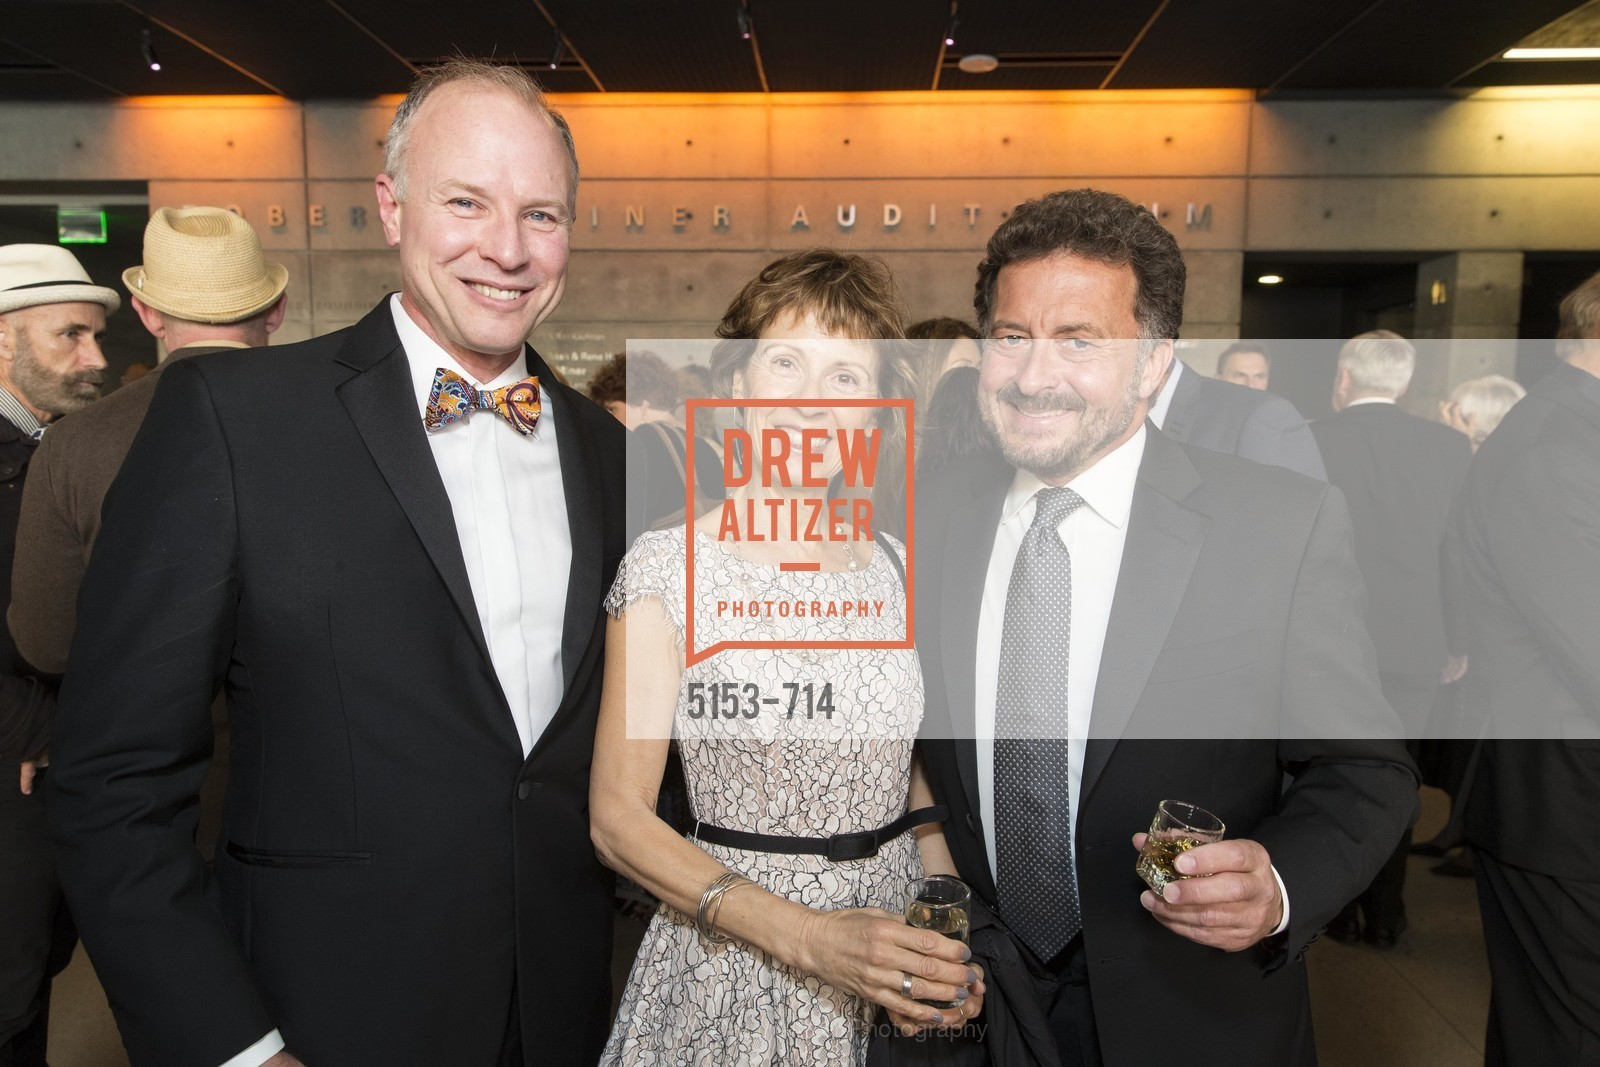 Don Derheim, Patricia Helleboid, Rex Cardinale, SFJAZZ Gala 2015 Honors Joni Mitchell with Lifetime Achievement Award, US, May 8th, 2015,Drew Altizer, Drew Altizer Photography, full-service agency, private events, San Francisco photographer, photographer california